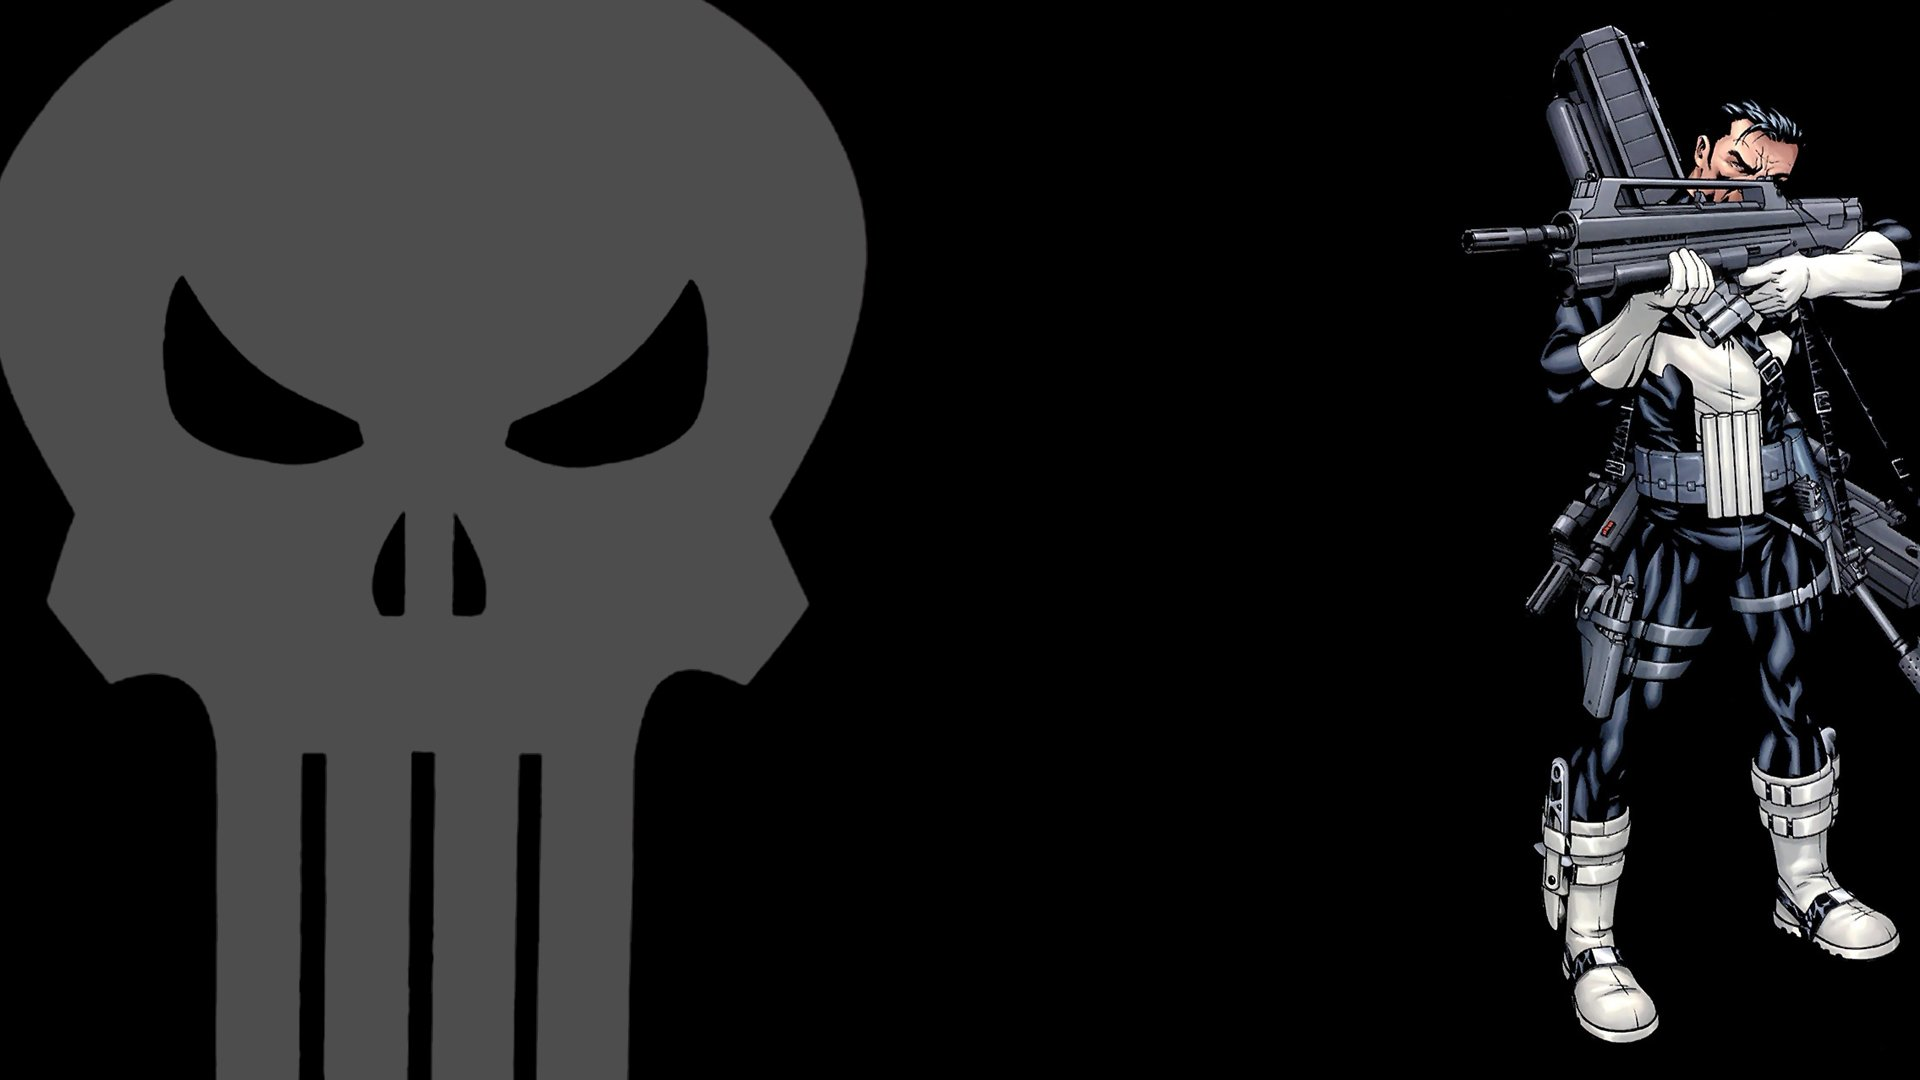 punisher logo wallpapers - photo #17